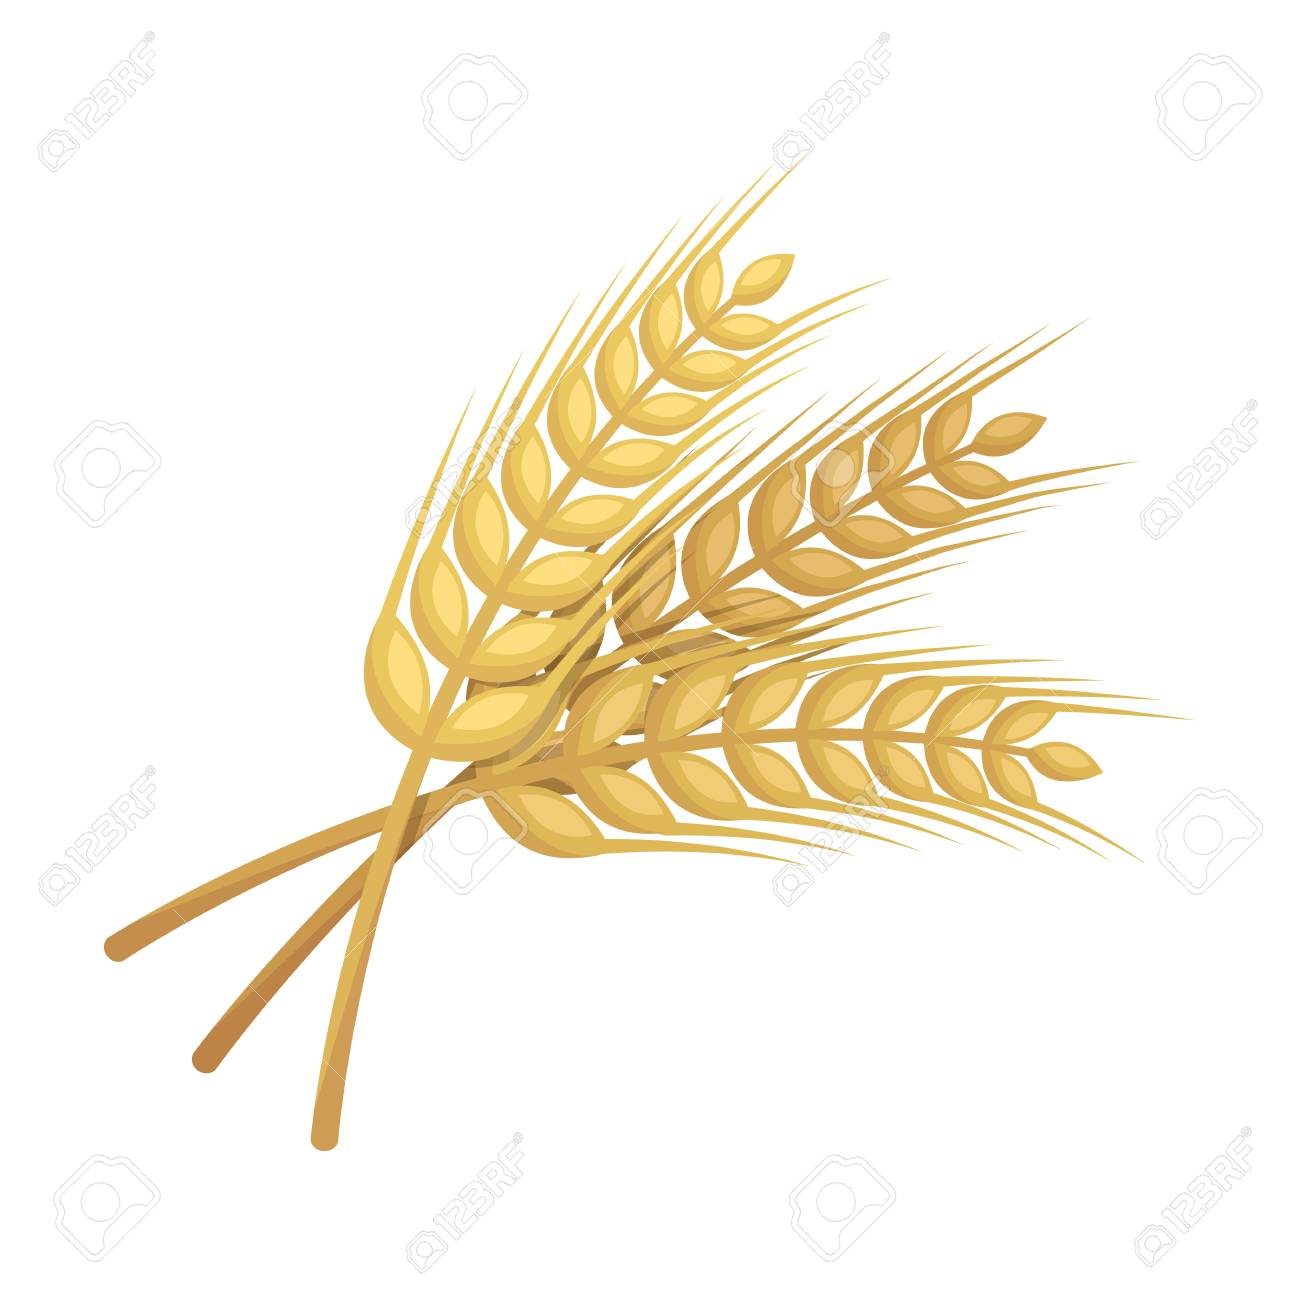 sprigs of wheat plant for brewing beer pub single icon in cartoon